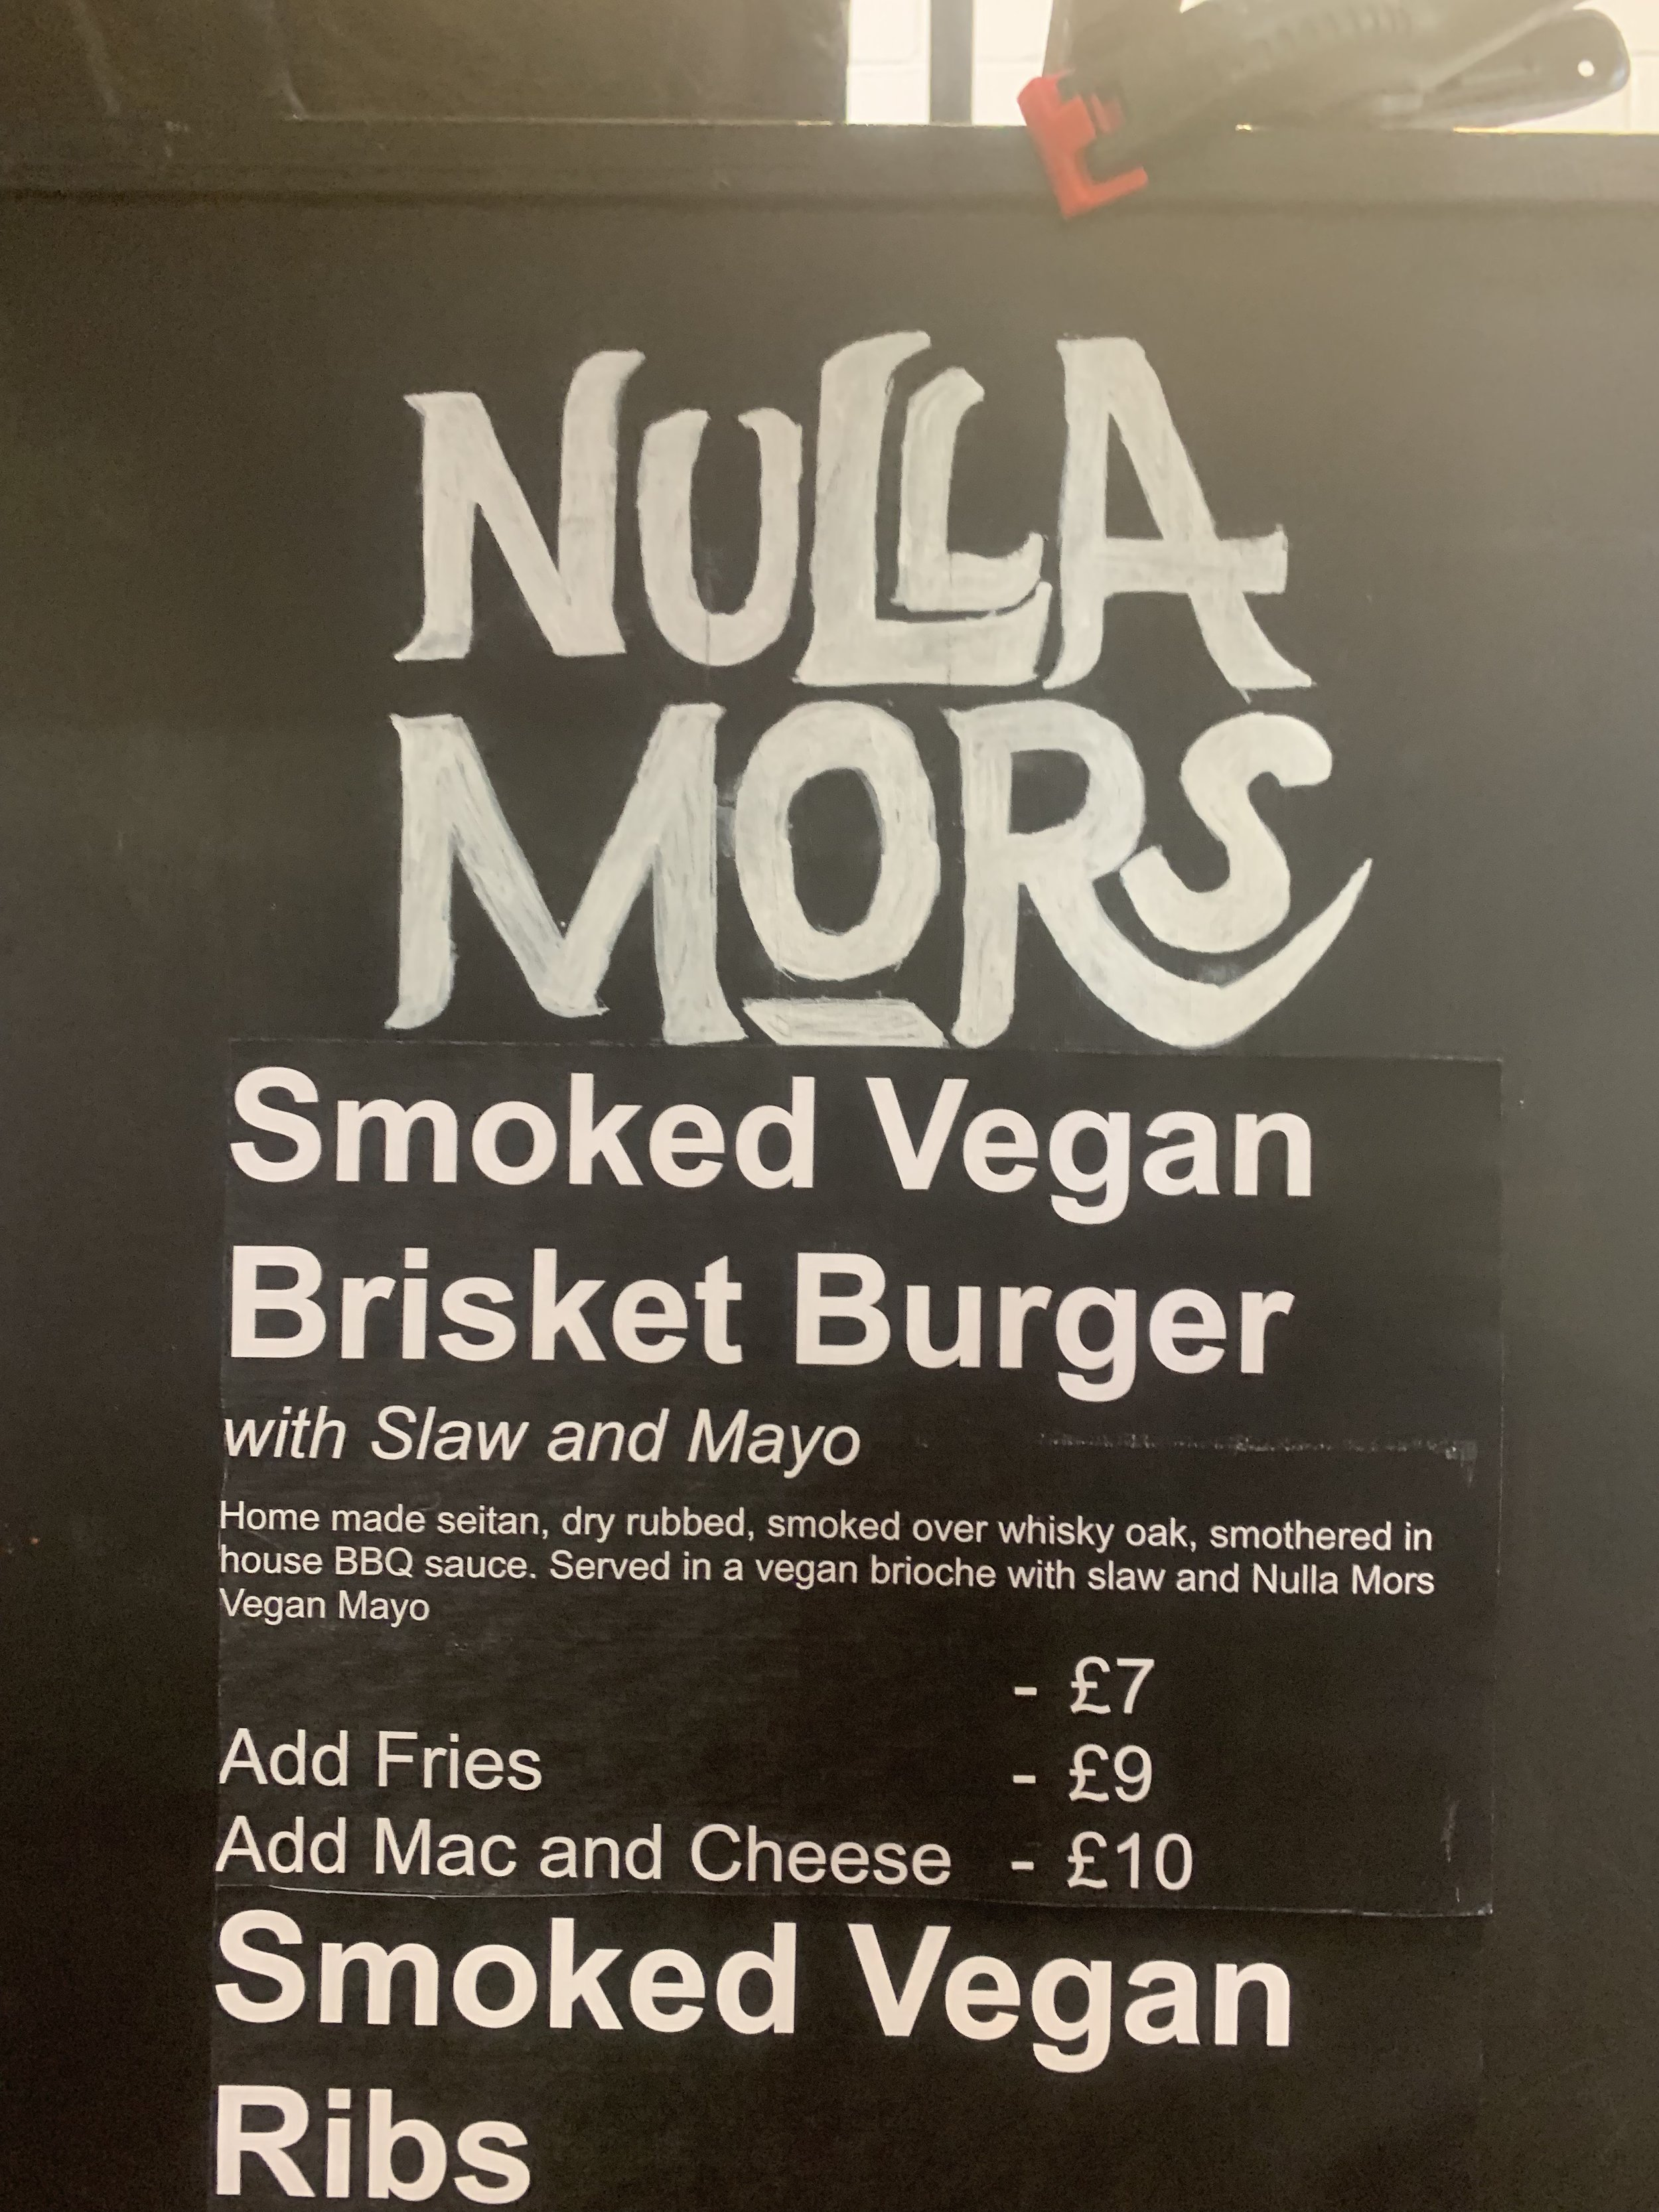 One smoked vegan brisket burger with mac and cheese please!